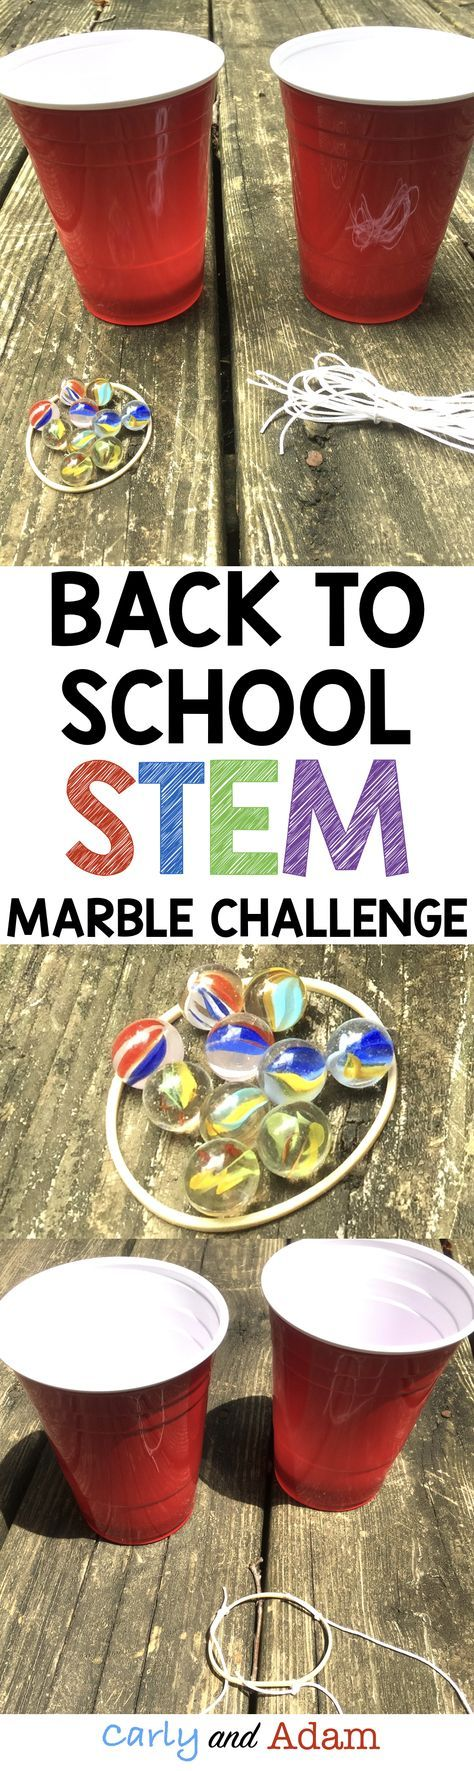 Back to School STEM Challenge! This challenge is perfect for building teamwork and problem solving skills at the beginning of the school year!